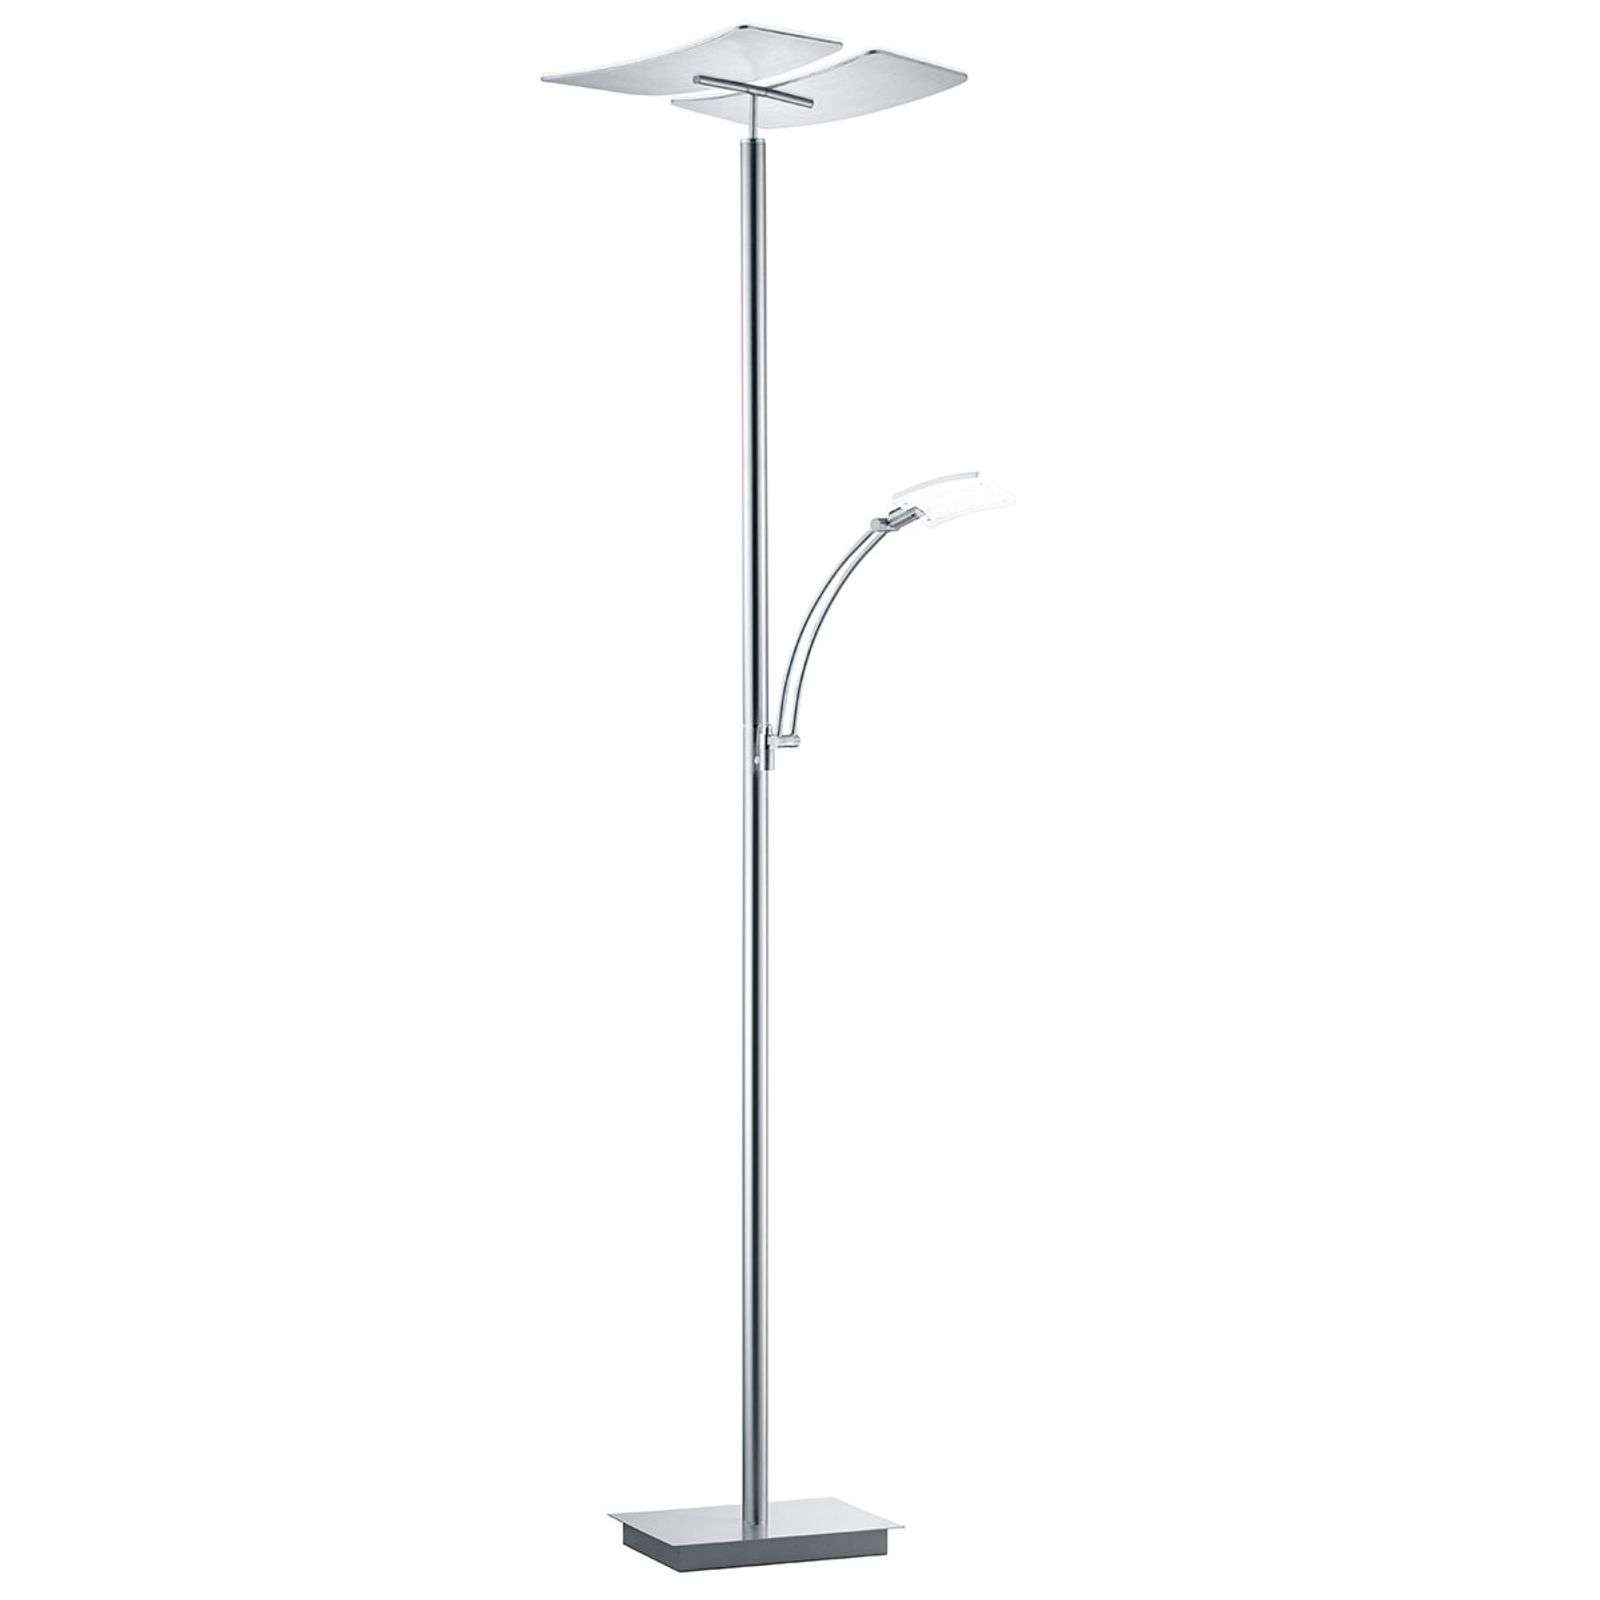 Lampadaire LED Duo, liseuse, variateur d'intensité